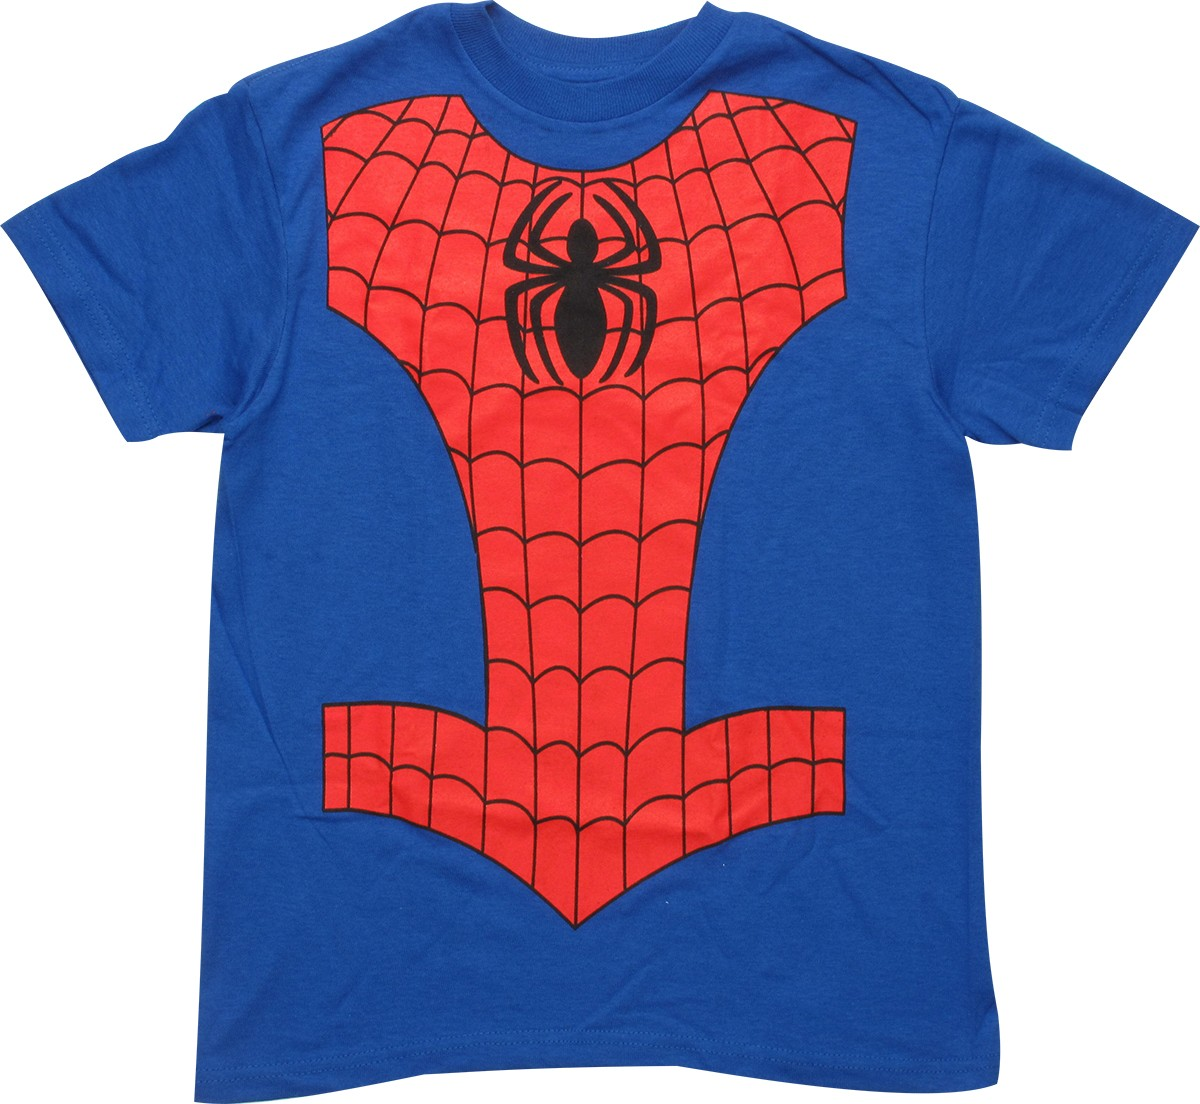 spiderman costume youth t shirt. Black Bedroom Furniture Sets. Home Design Ideas